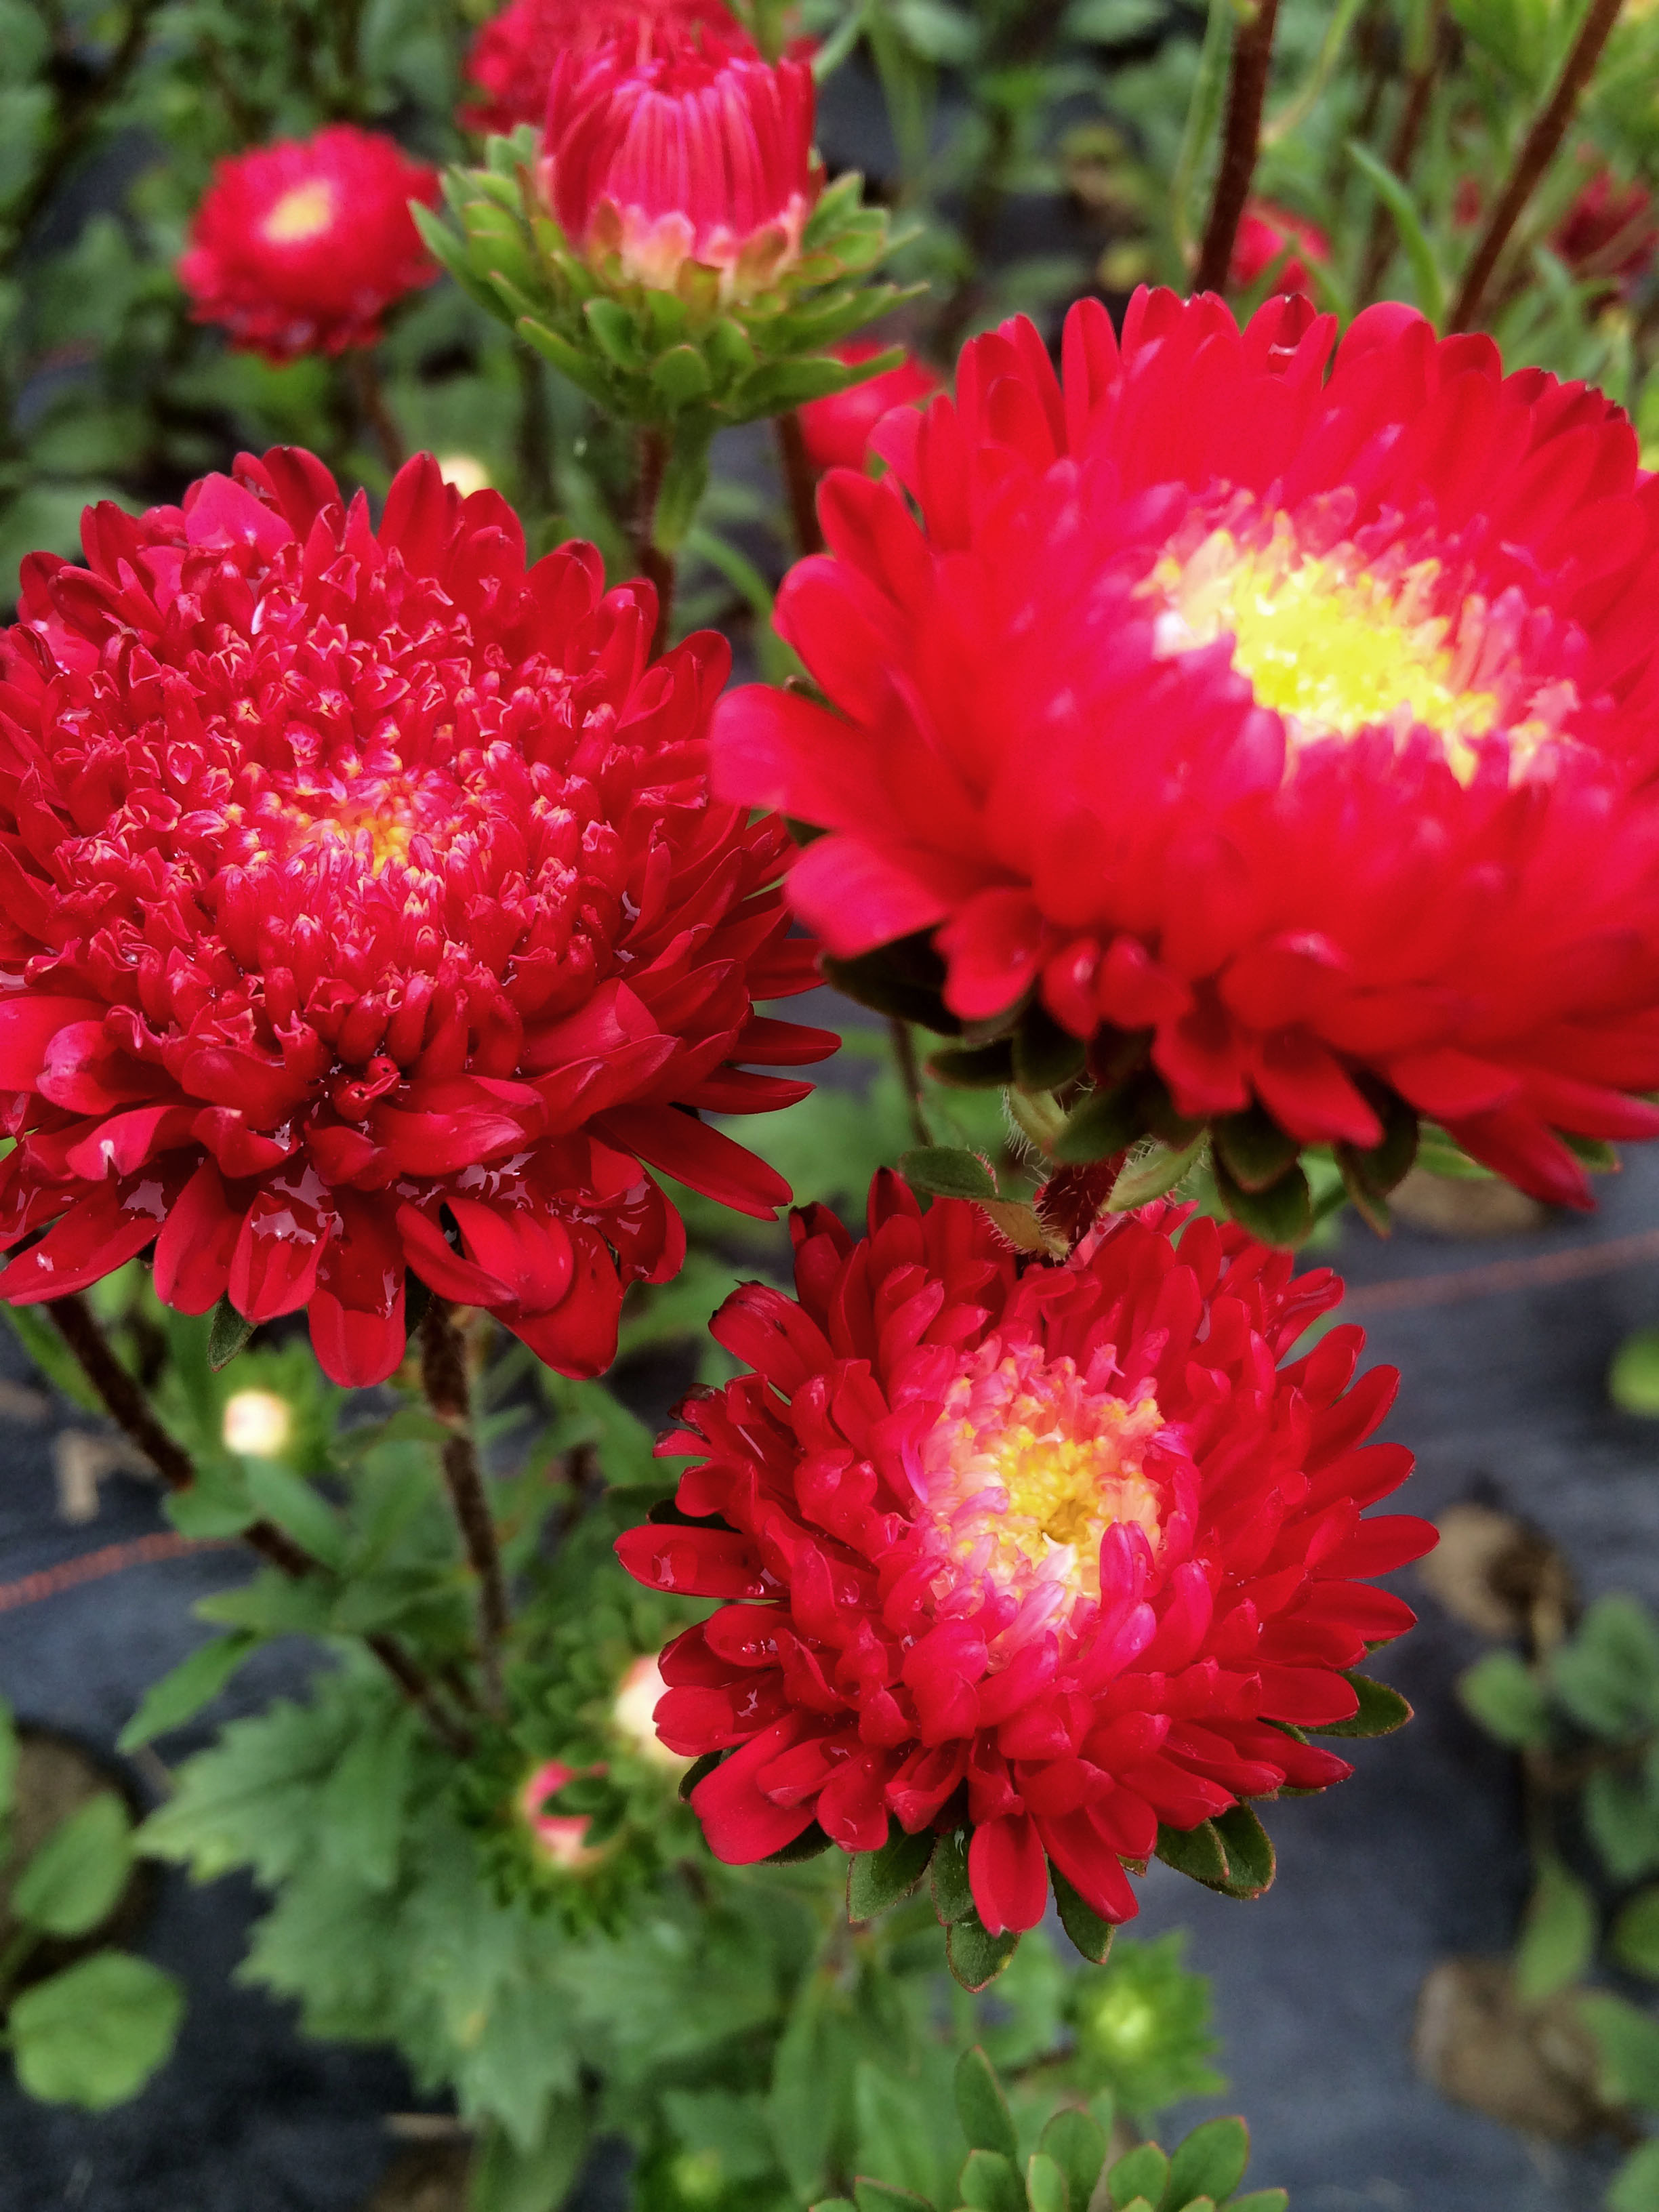 Red Matsumoto Asters are brilliant, long lasting flowers that add punch and volume to any bouquet.